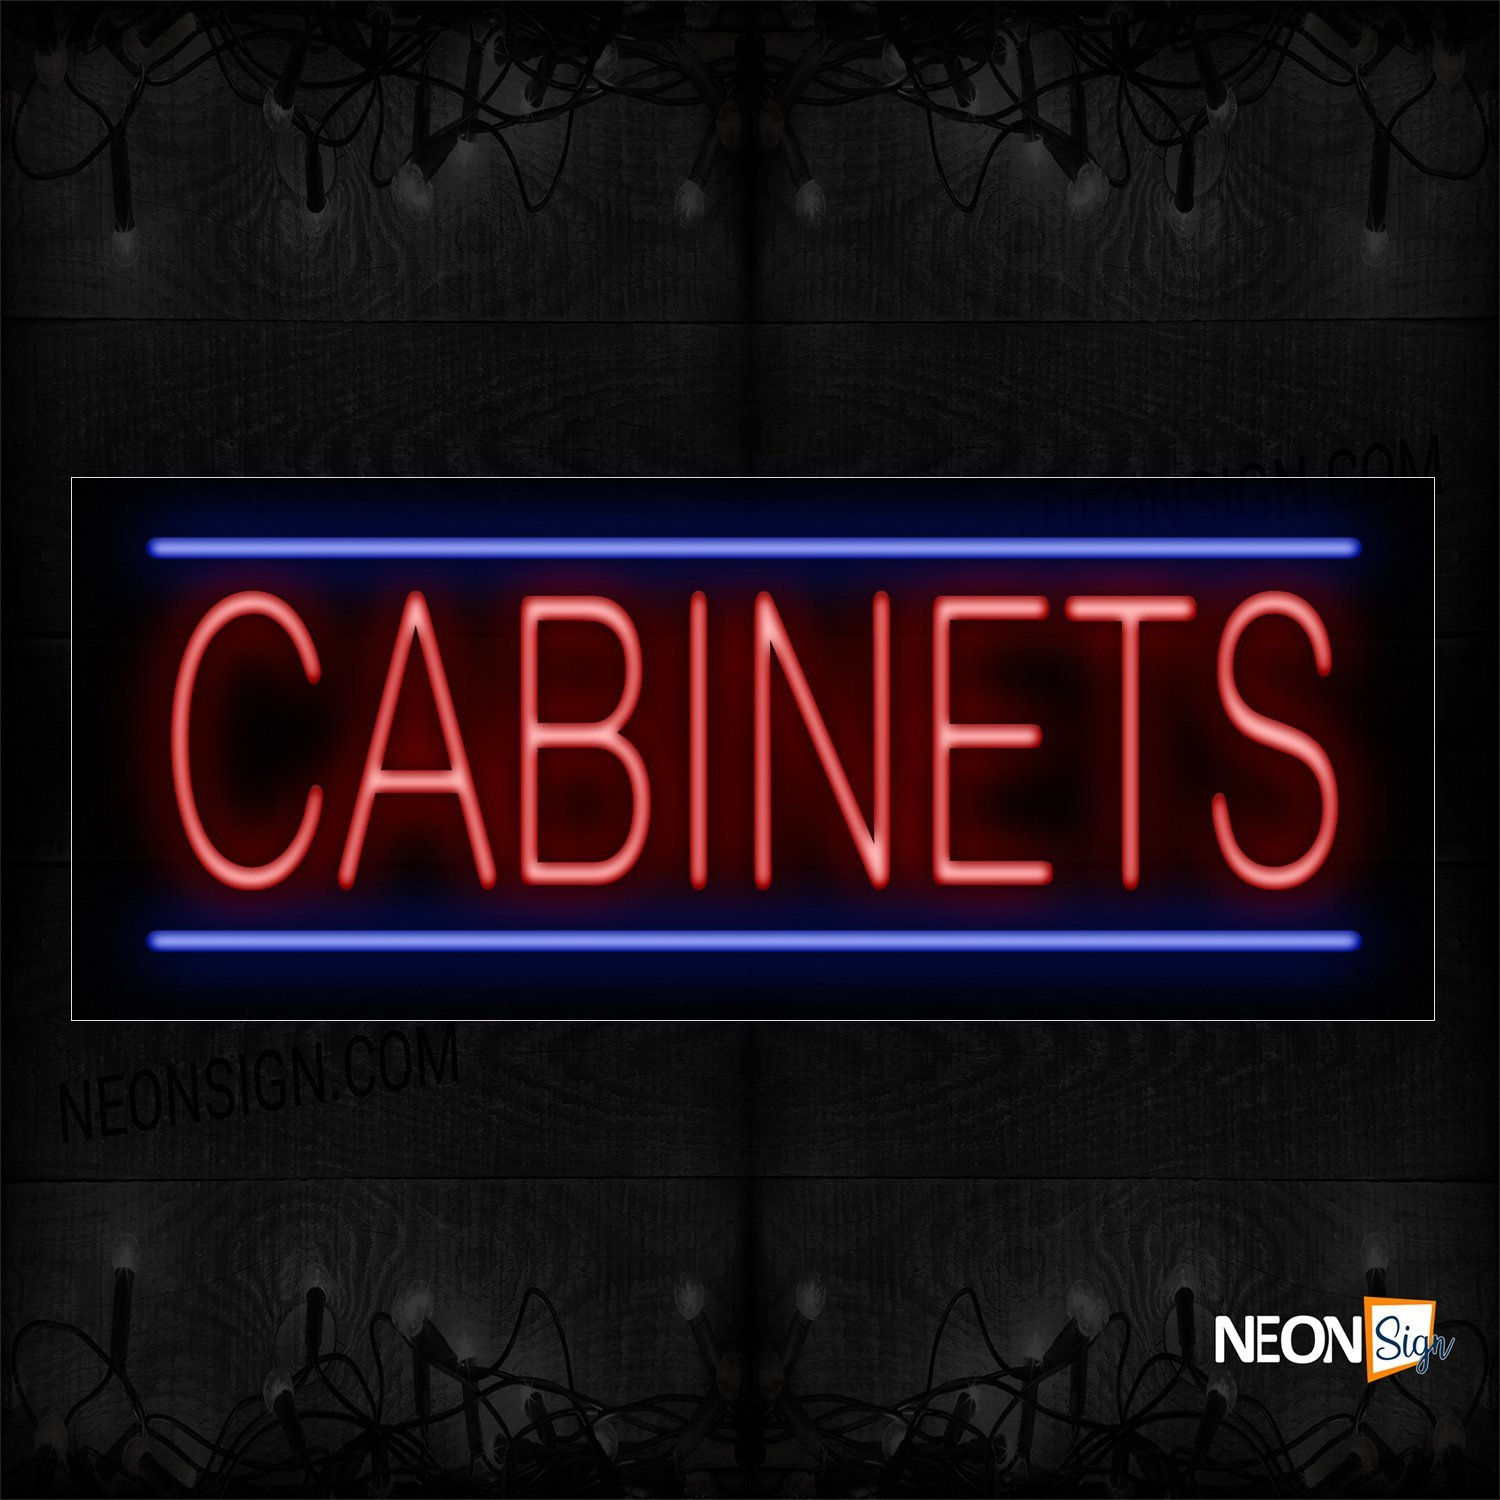 Image of 10518 Cabinets With Horizontal Line Neon Sign_13x32 Black Backing